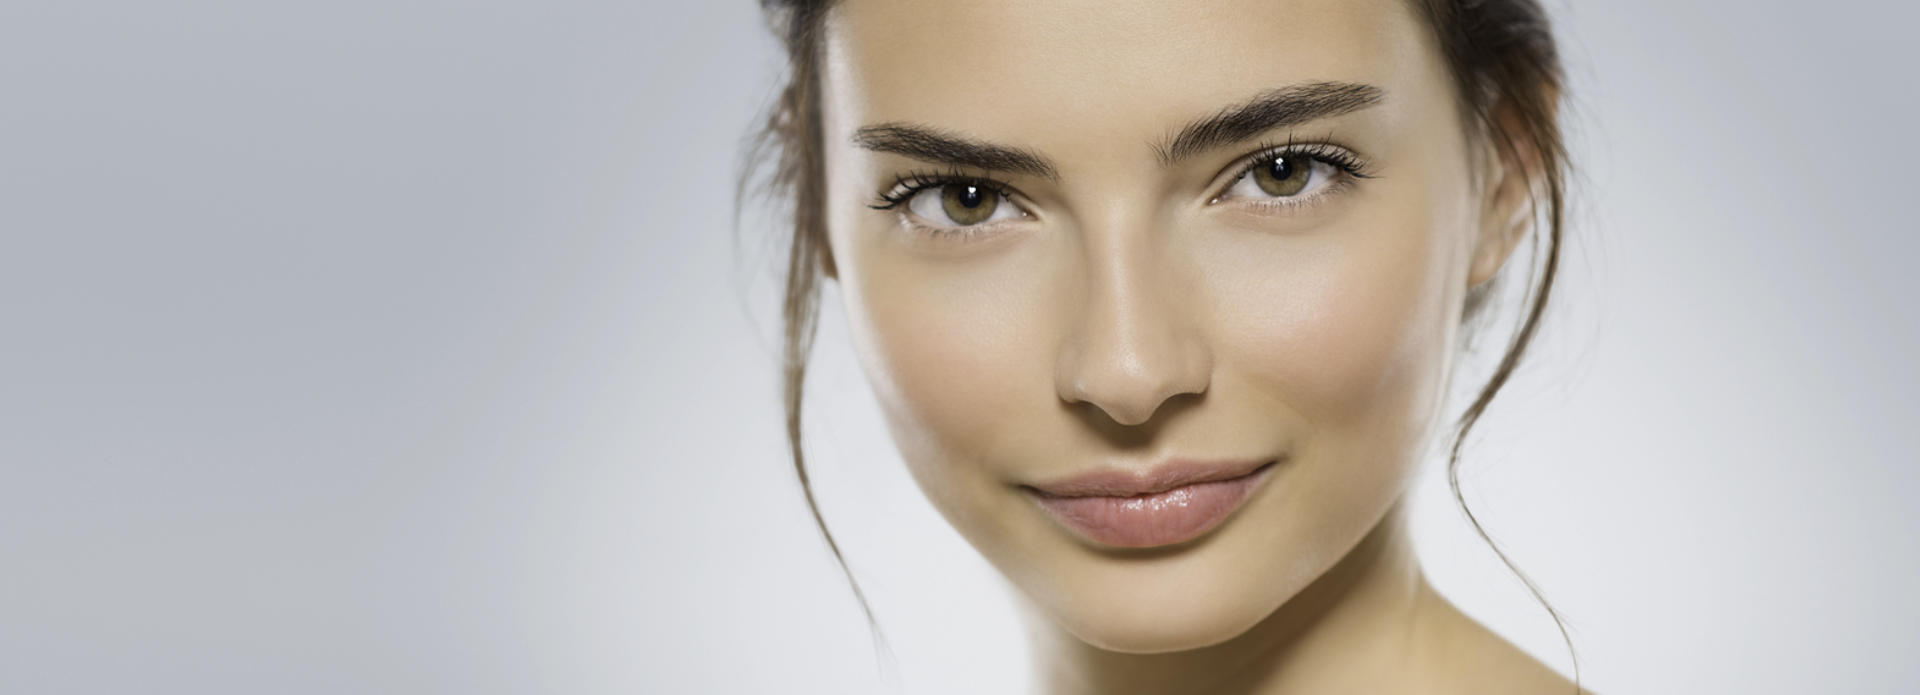 Face of a young-looking woman after facial rejuvenation treatment.